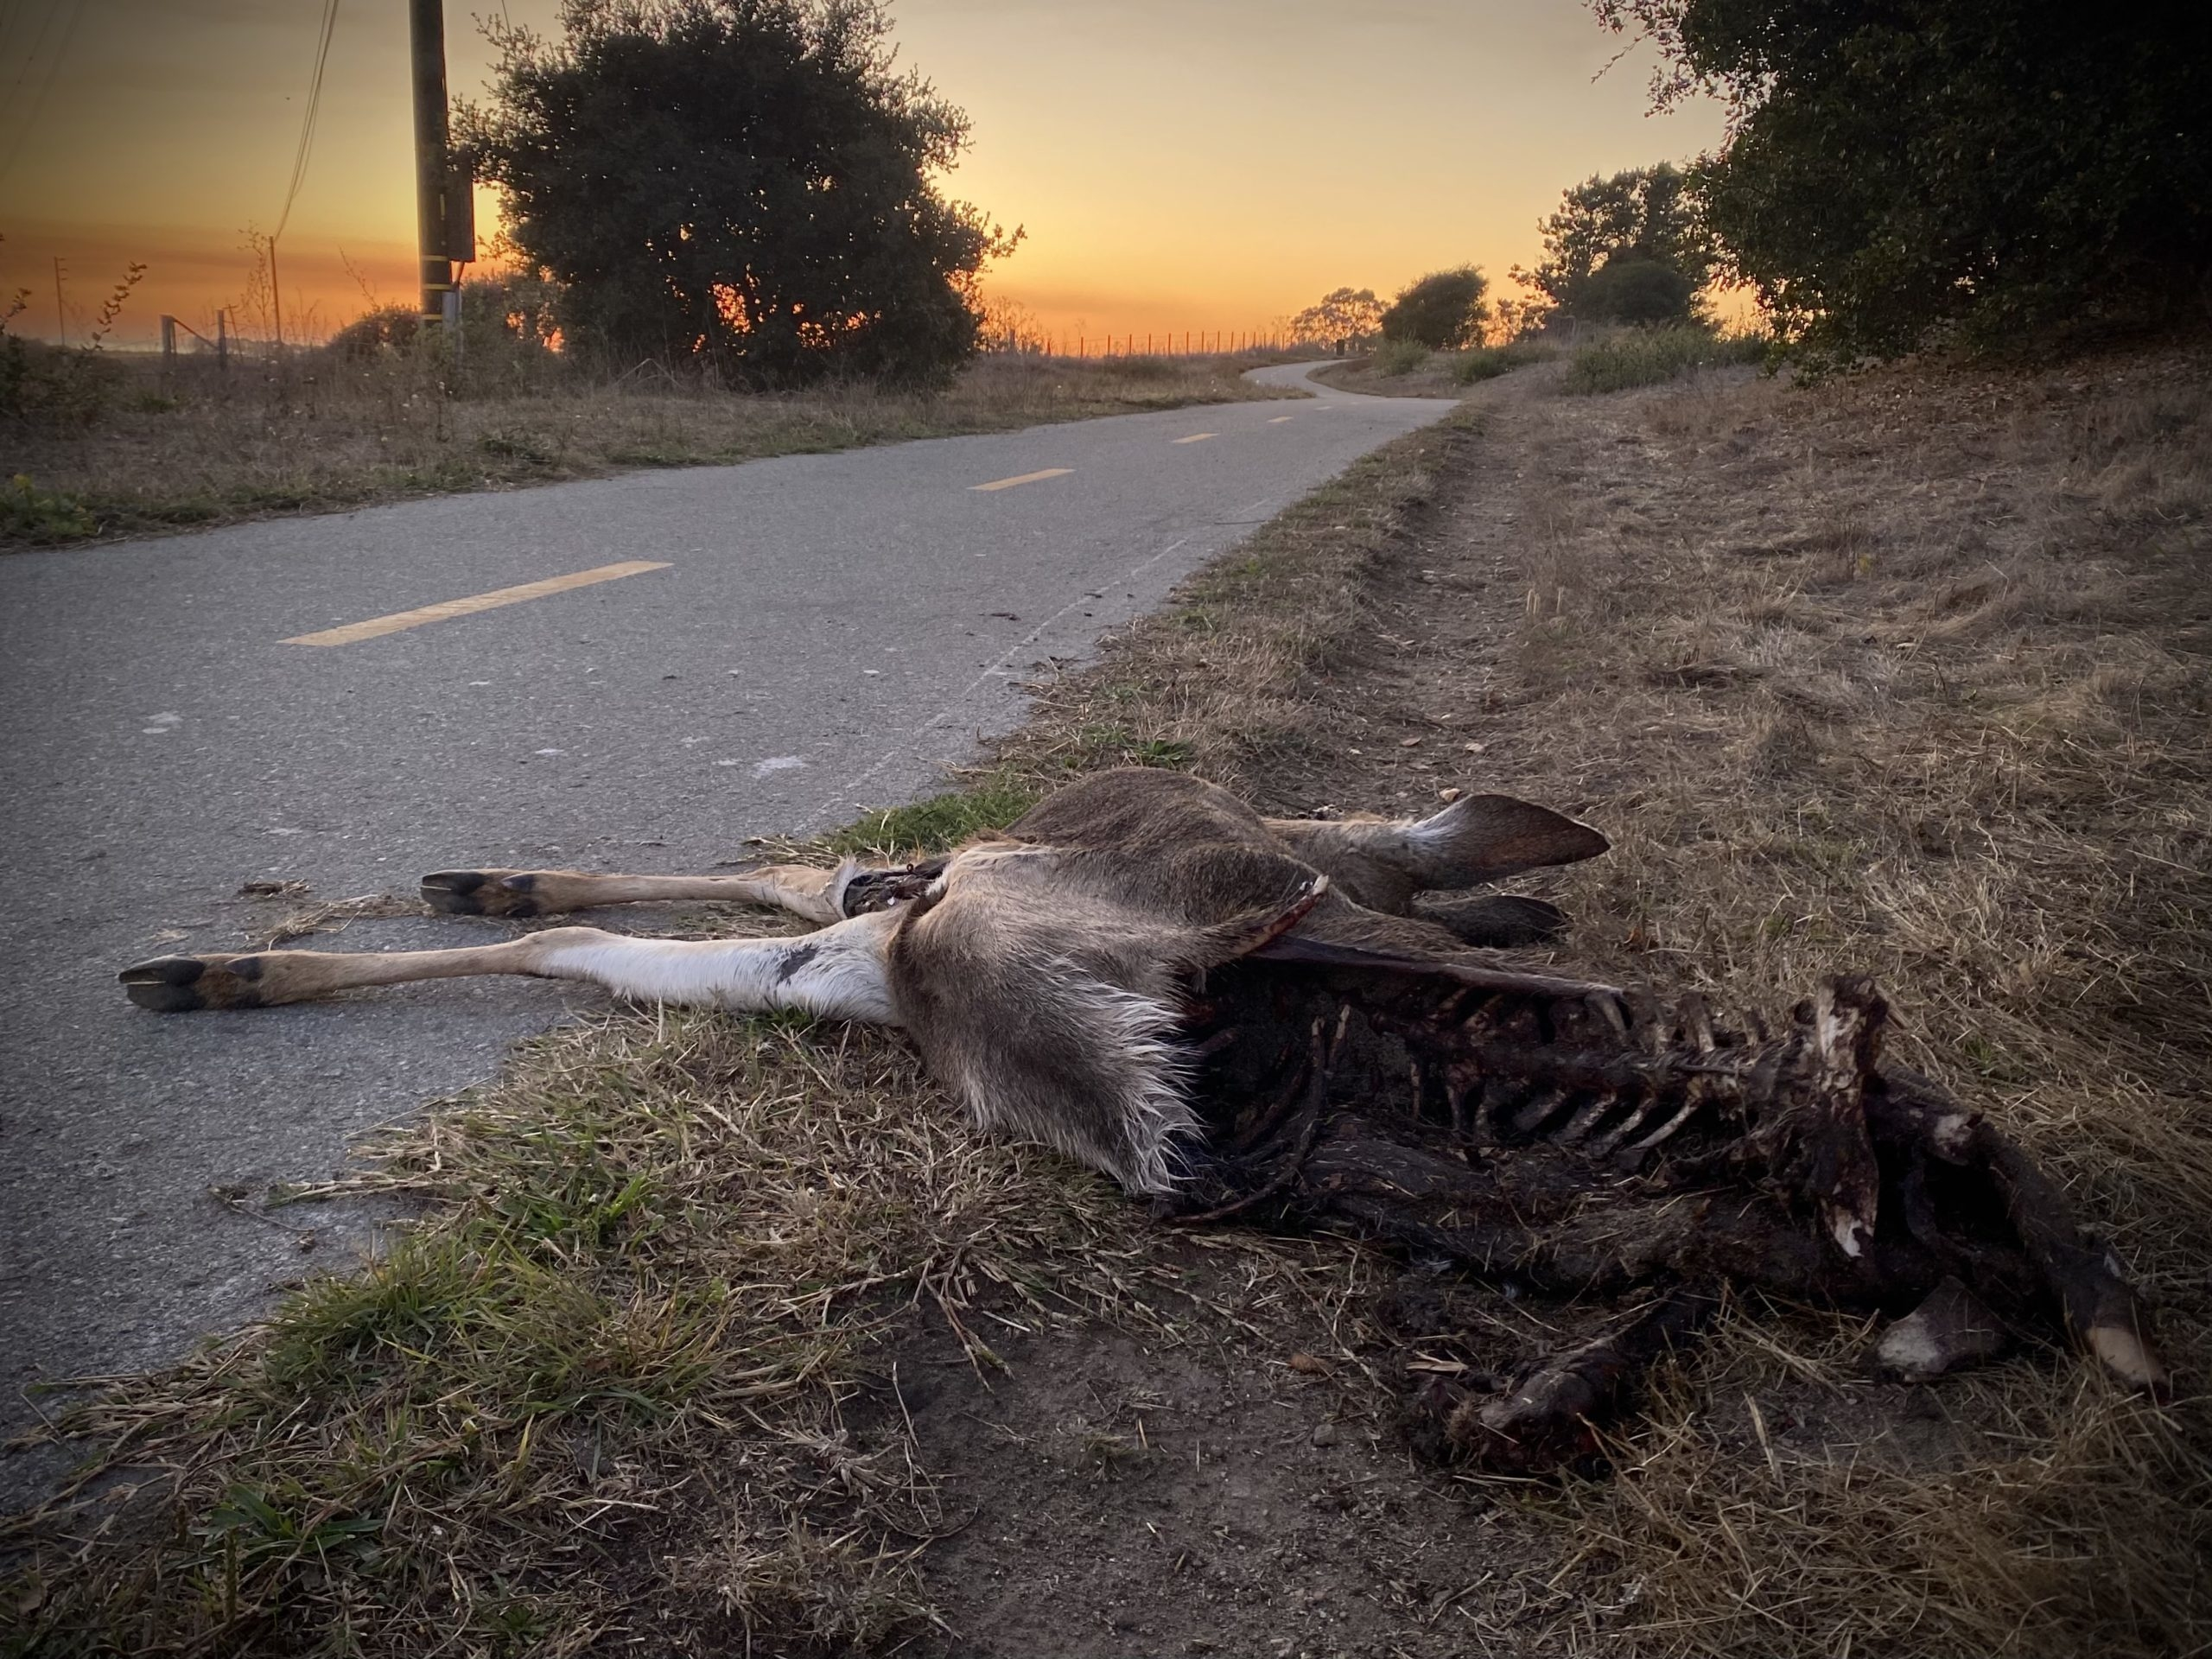 Half of a deer carcass is strewn across an asphalt path, while the other half is visibly picked apart with bones visible.